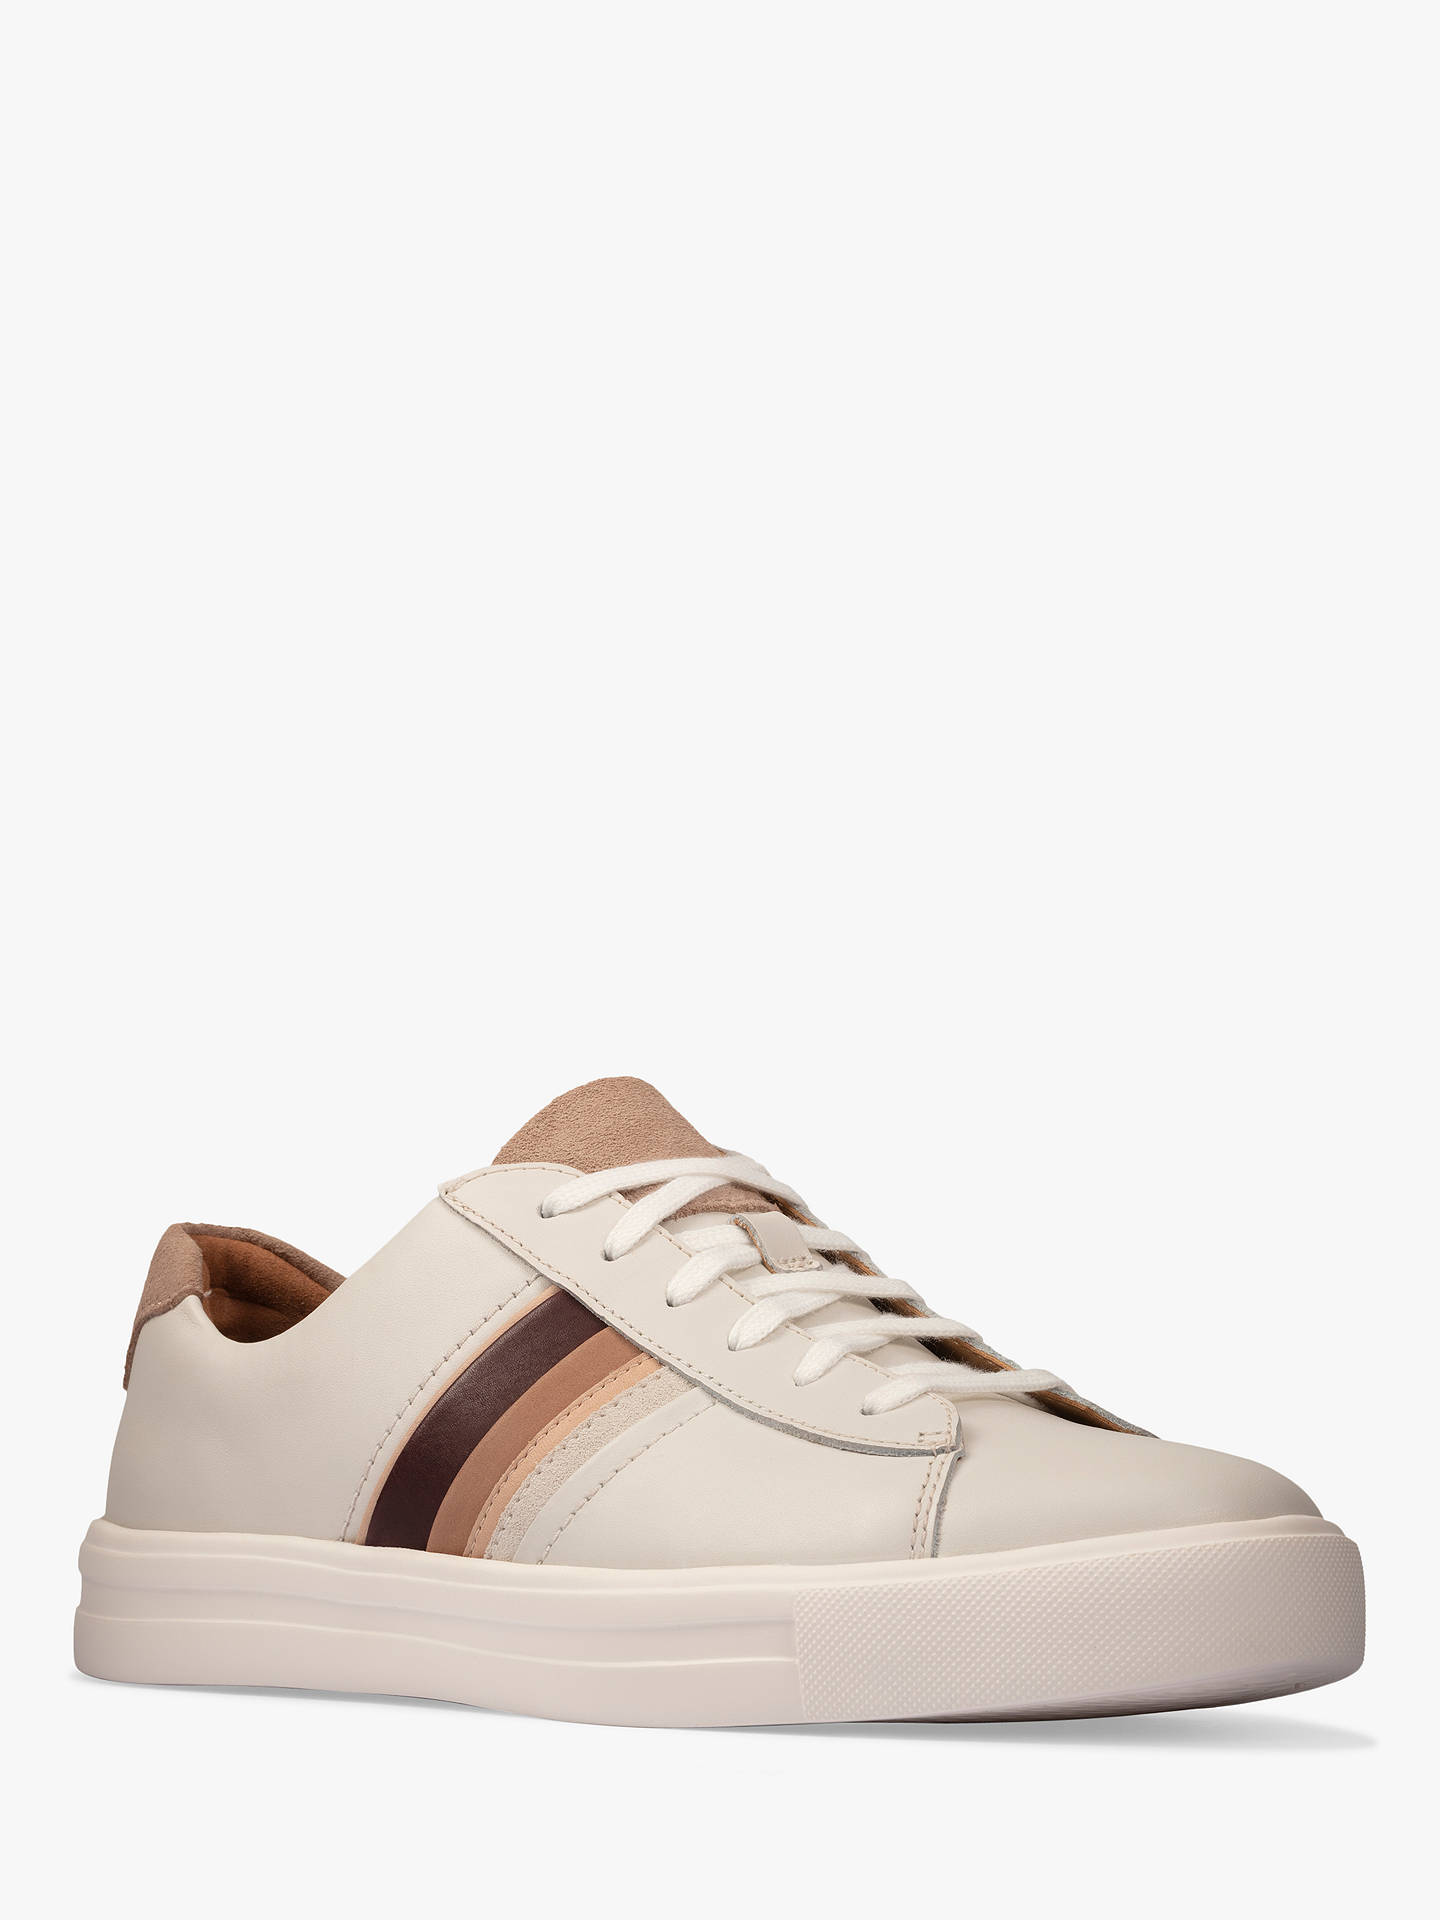 Buy Clarks Un Maui Low Top Lace Up Leather Trainers, Natural, 3 Online at johnlewis.com